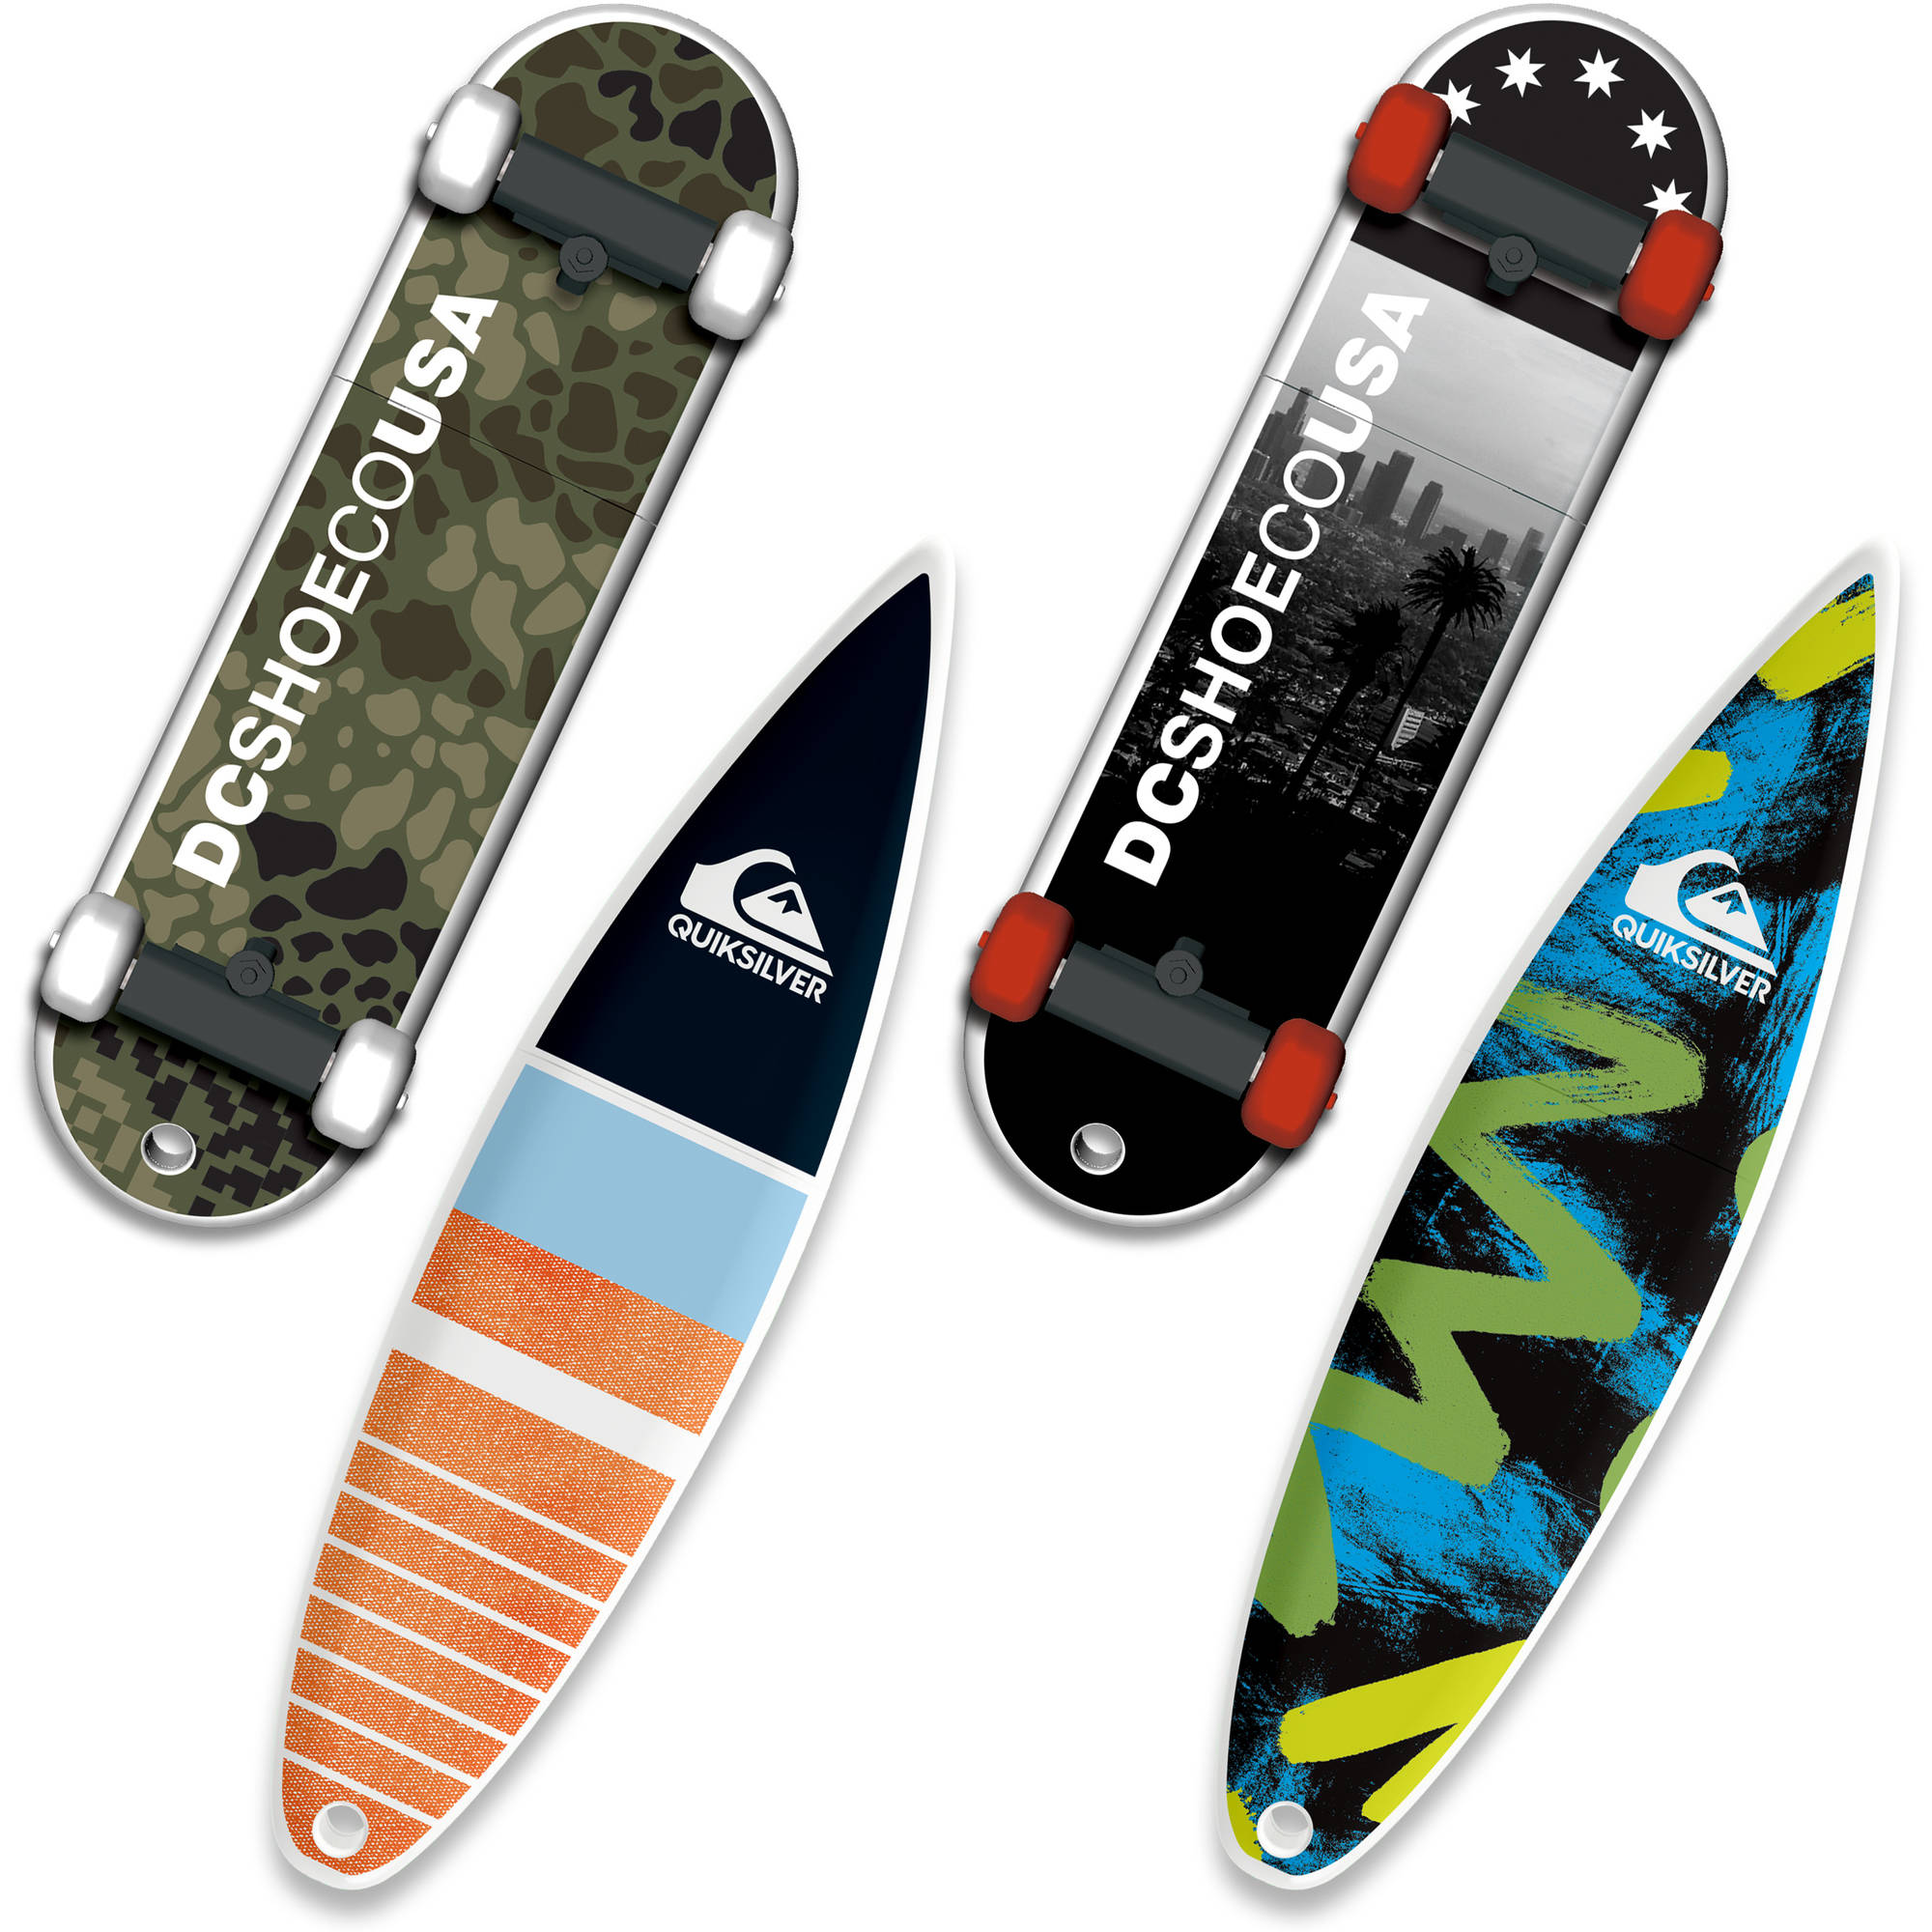 Image of 16GB EP ASD USB, DC Shoes SkateDrive and Quiksilver SurfDrive, 4-Pack